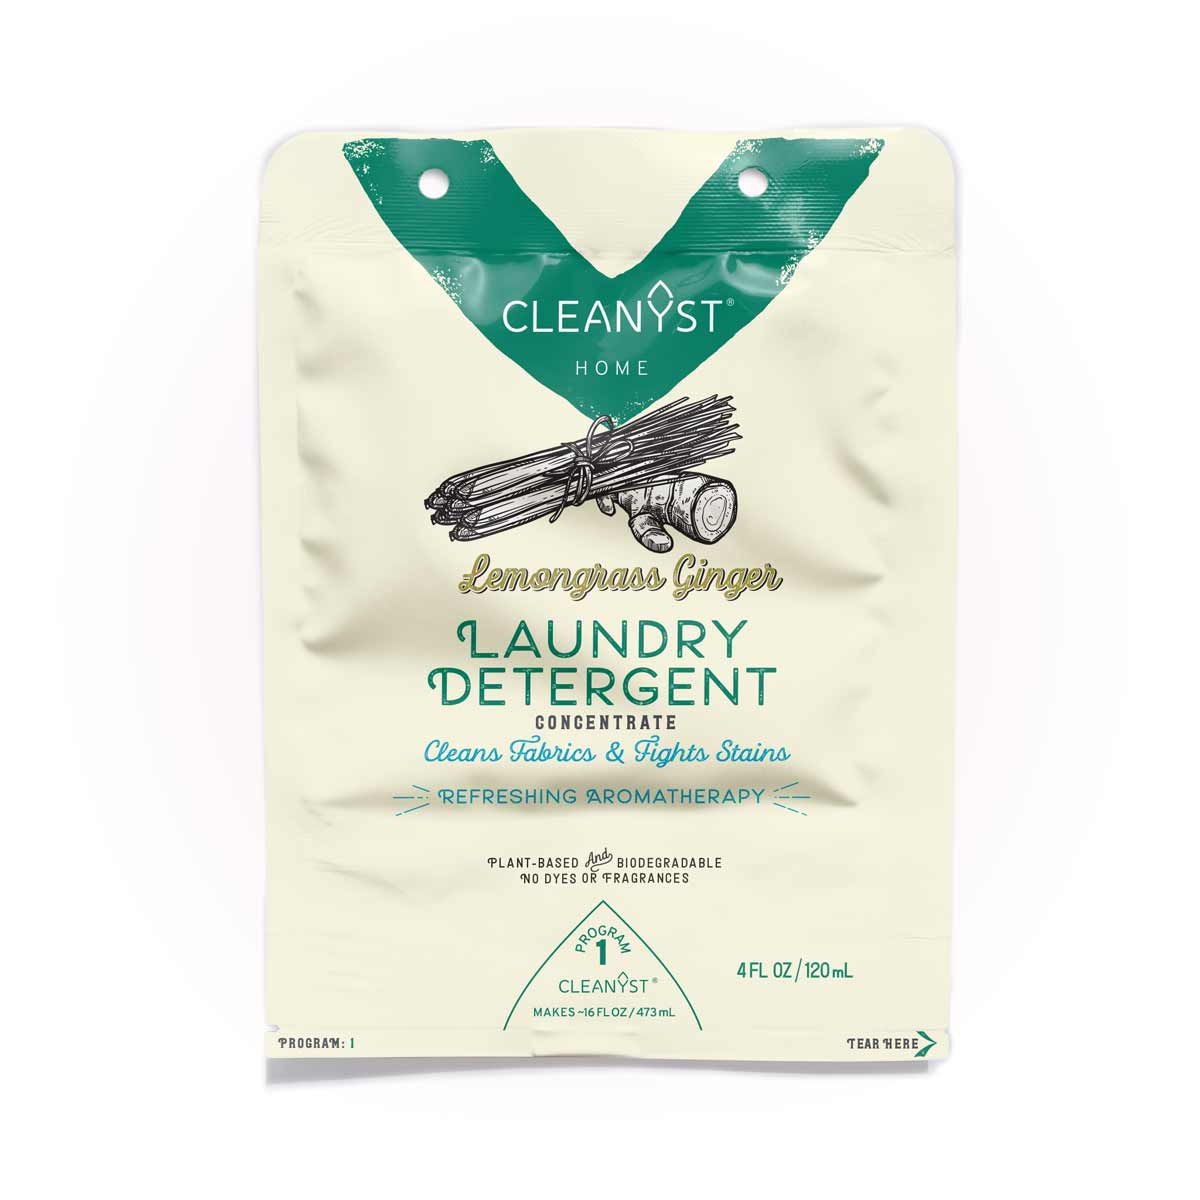 LEMONGRASS GINGER LAUNDRY DETERGENT CONCENTRATE